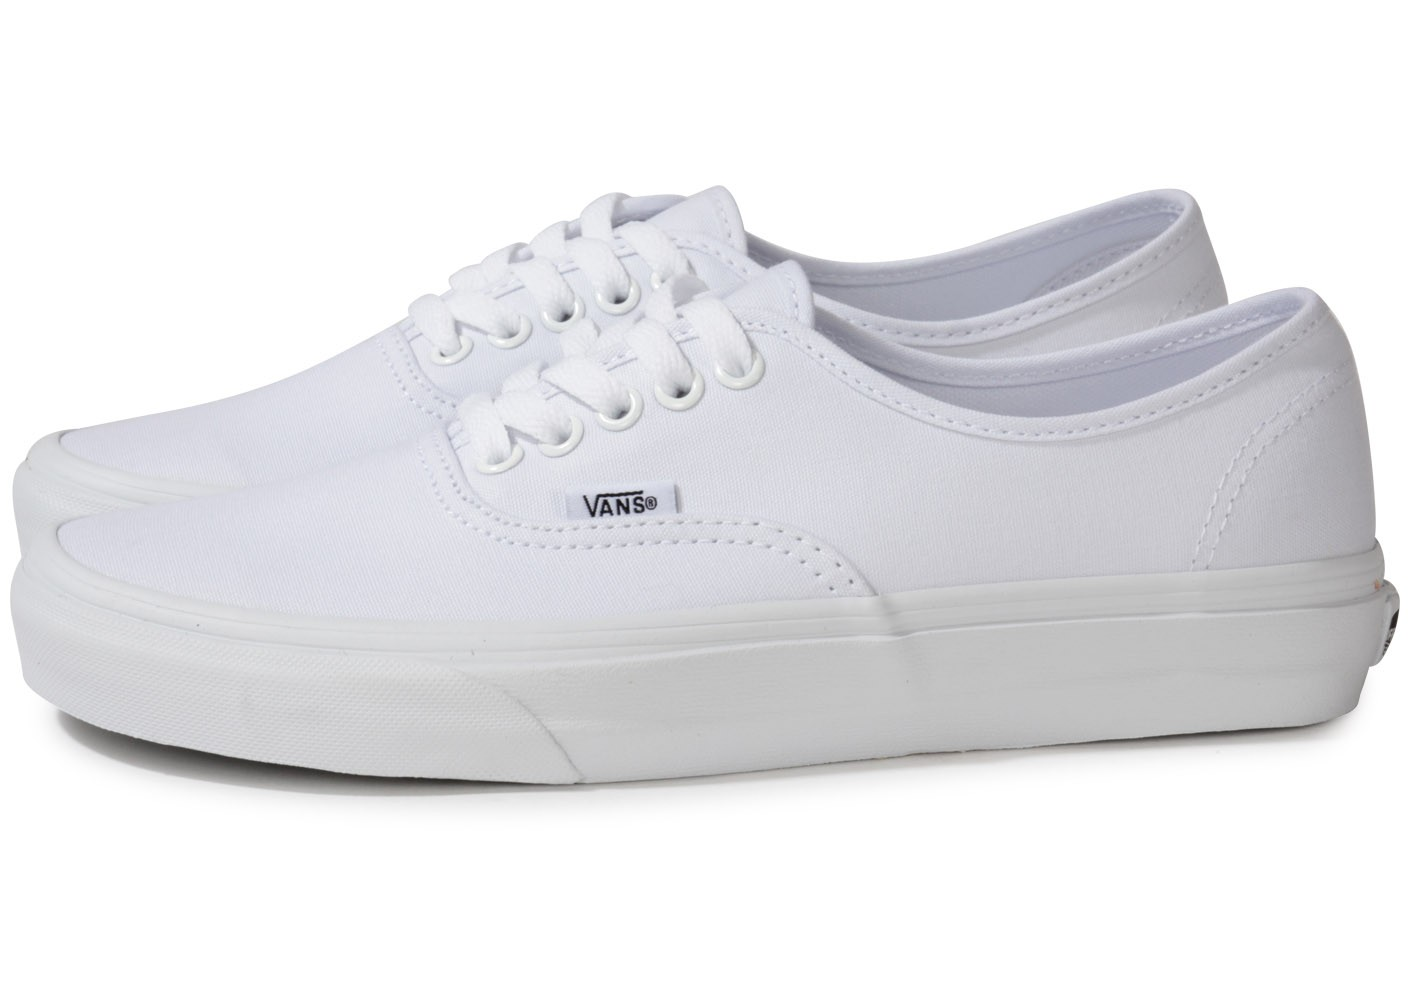 Vans Authentic Blanche - Chaussures Baskets homme - Snaidero-usa